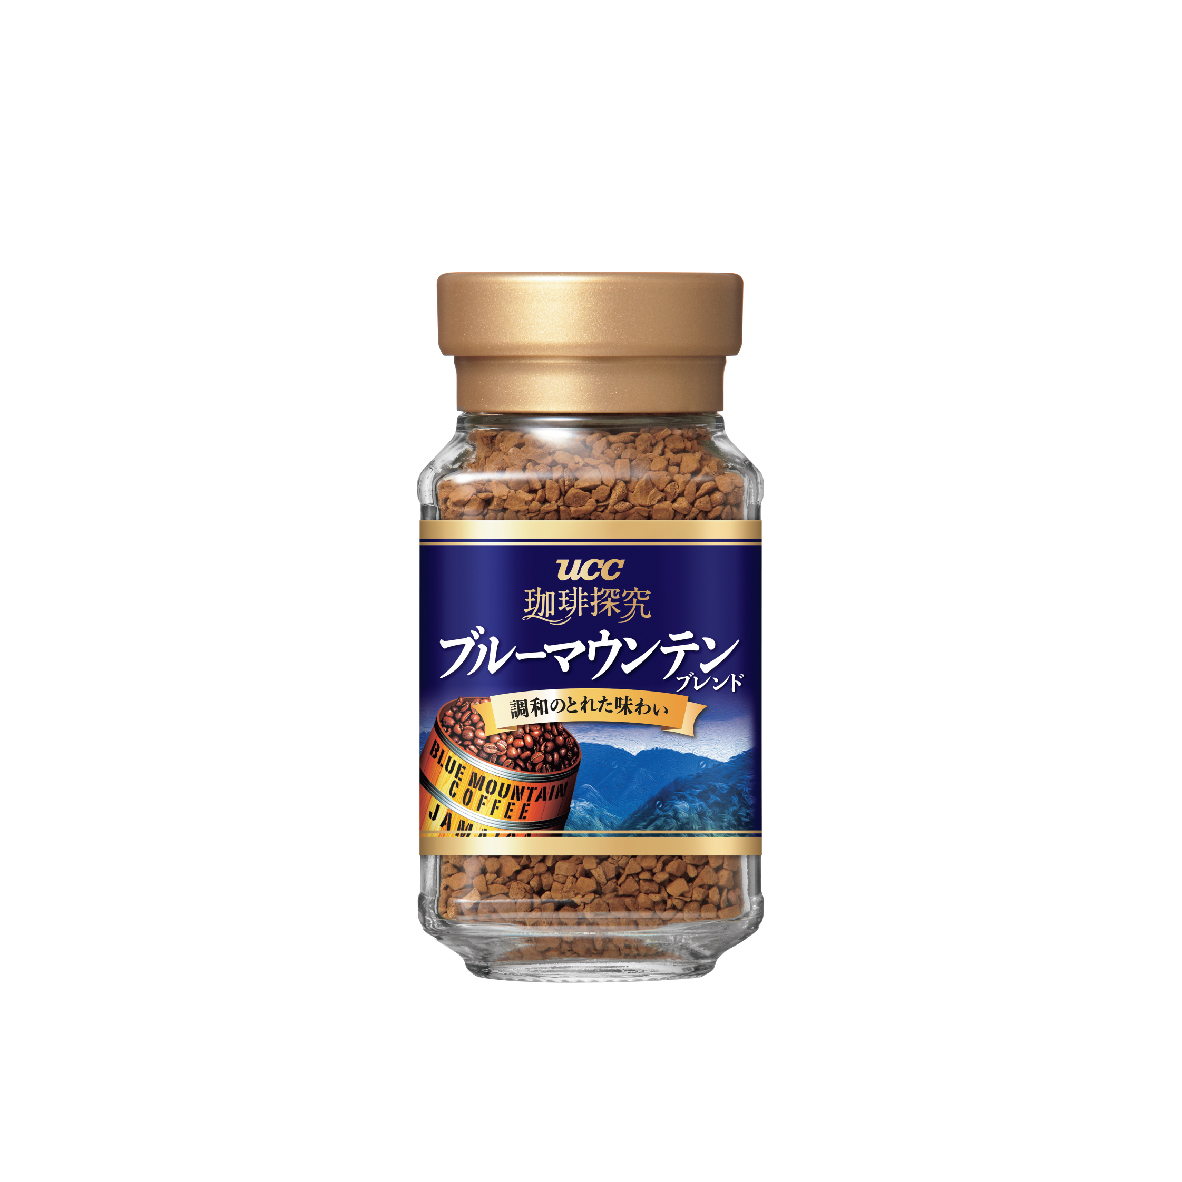 UCC Coffee Exploration Blue Mountain Instant Coffee